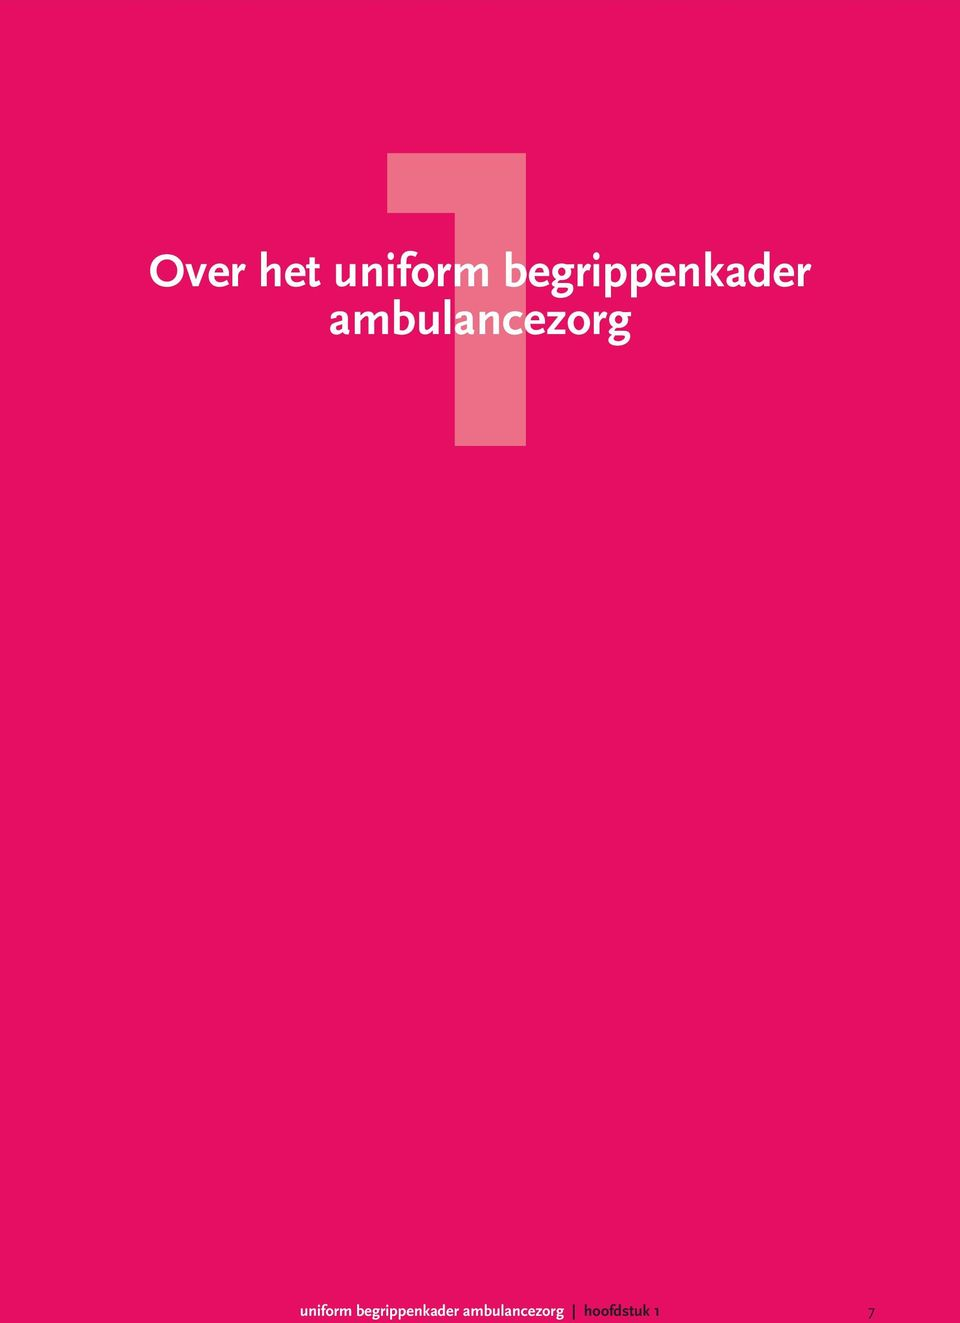 ambulancezorg uniform